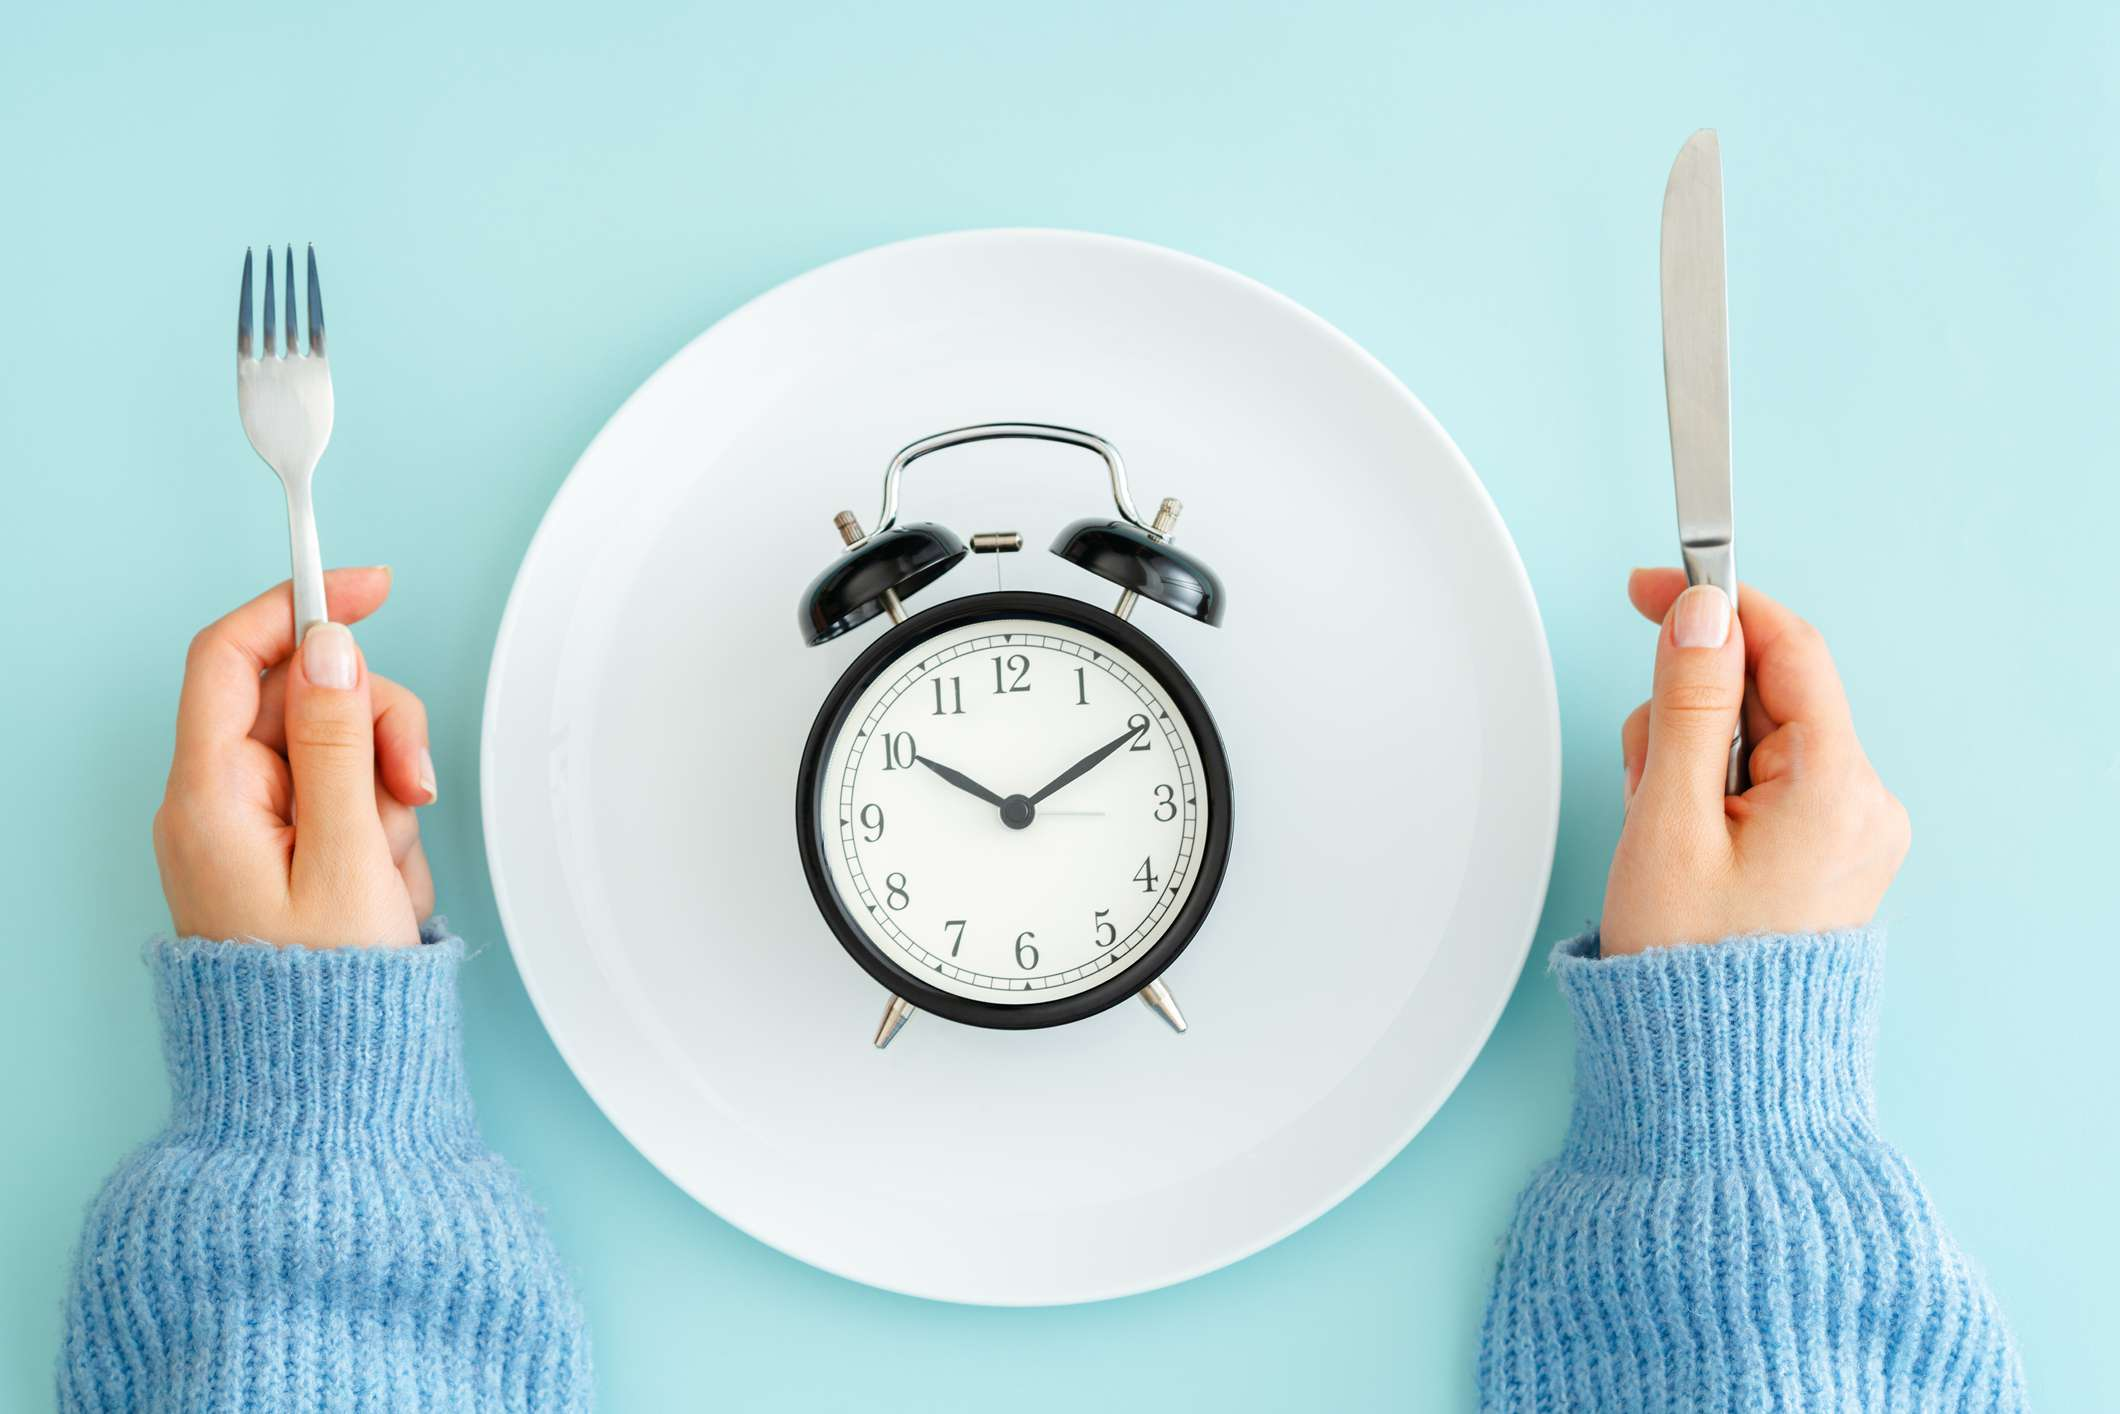 Diabetes and Intermittent Fasting: What Do The Experts Say?